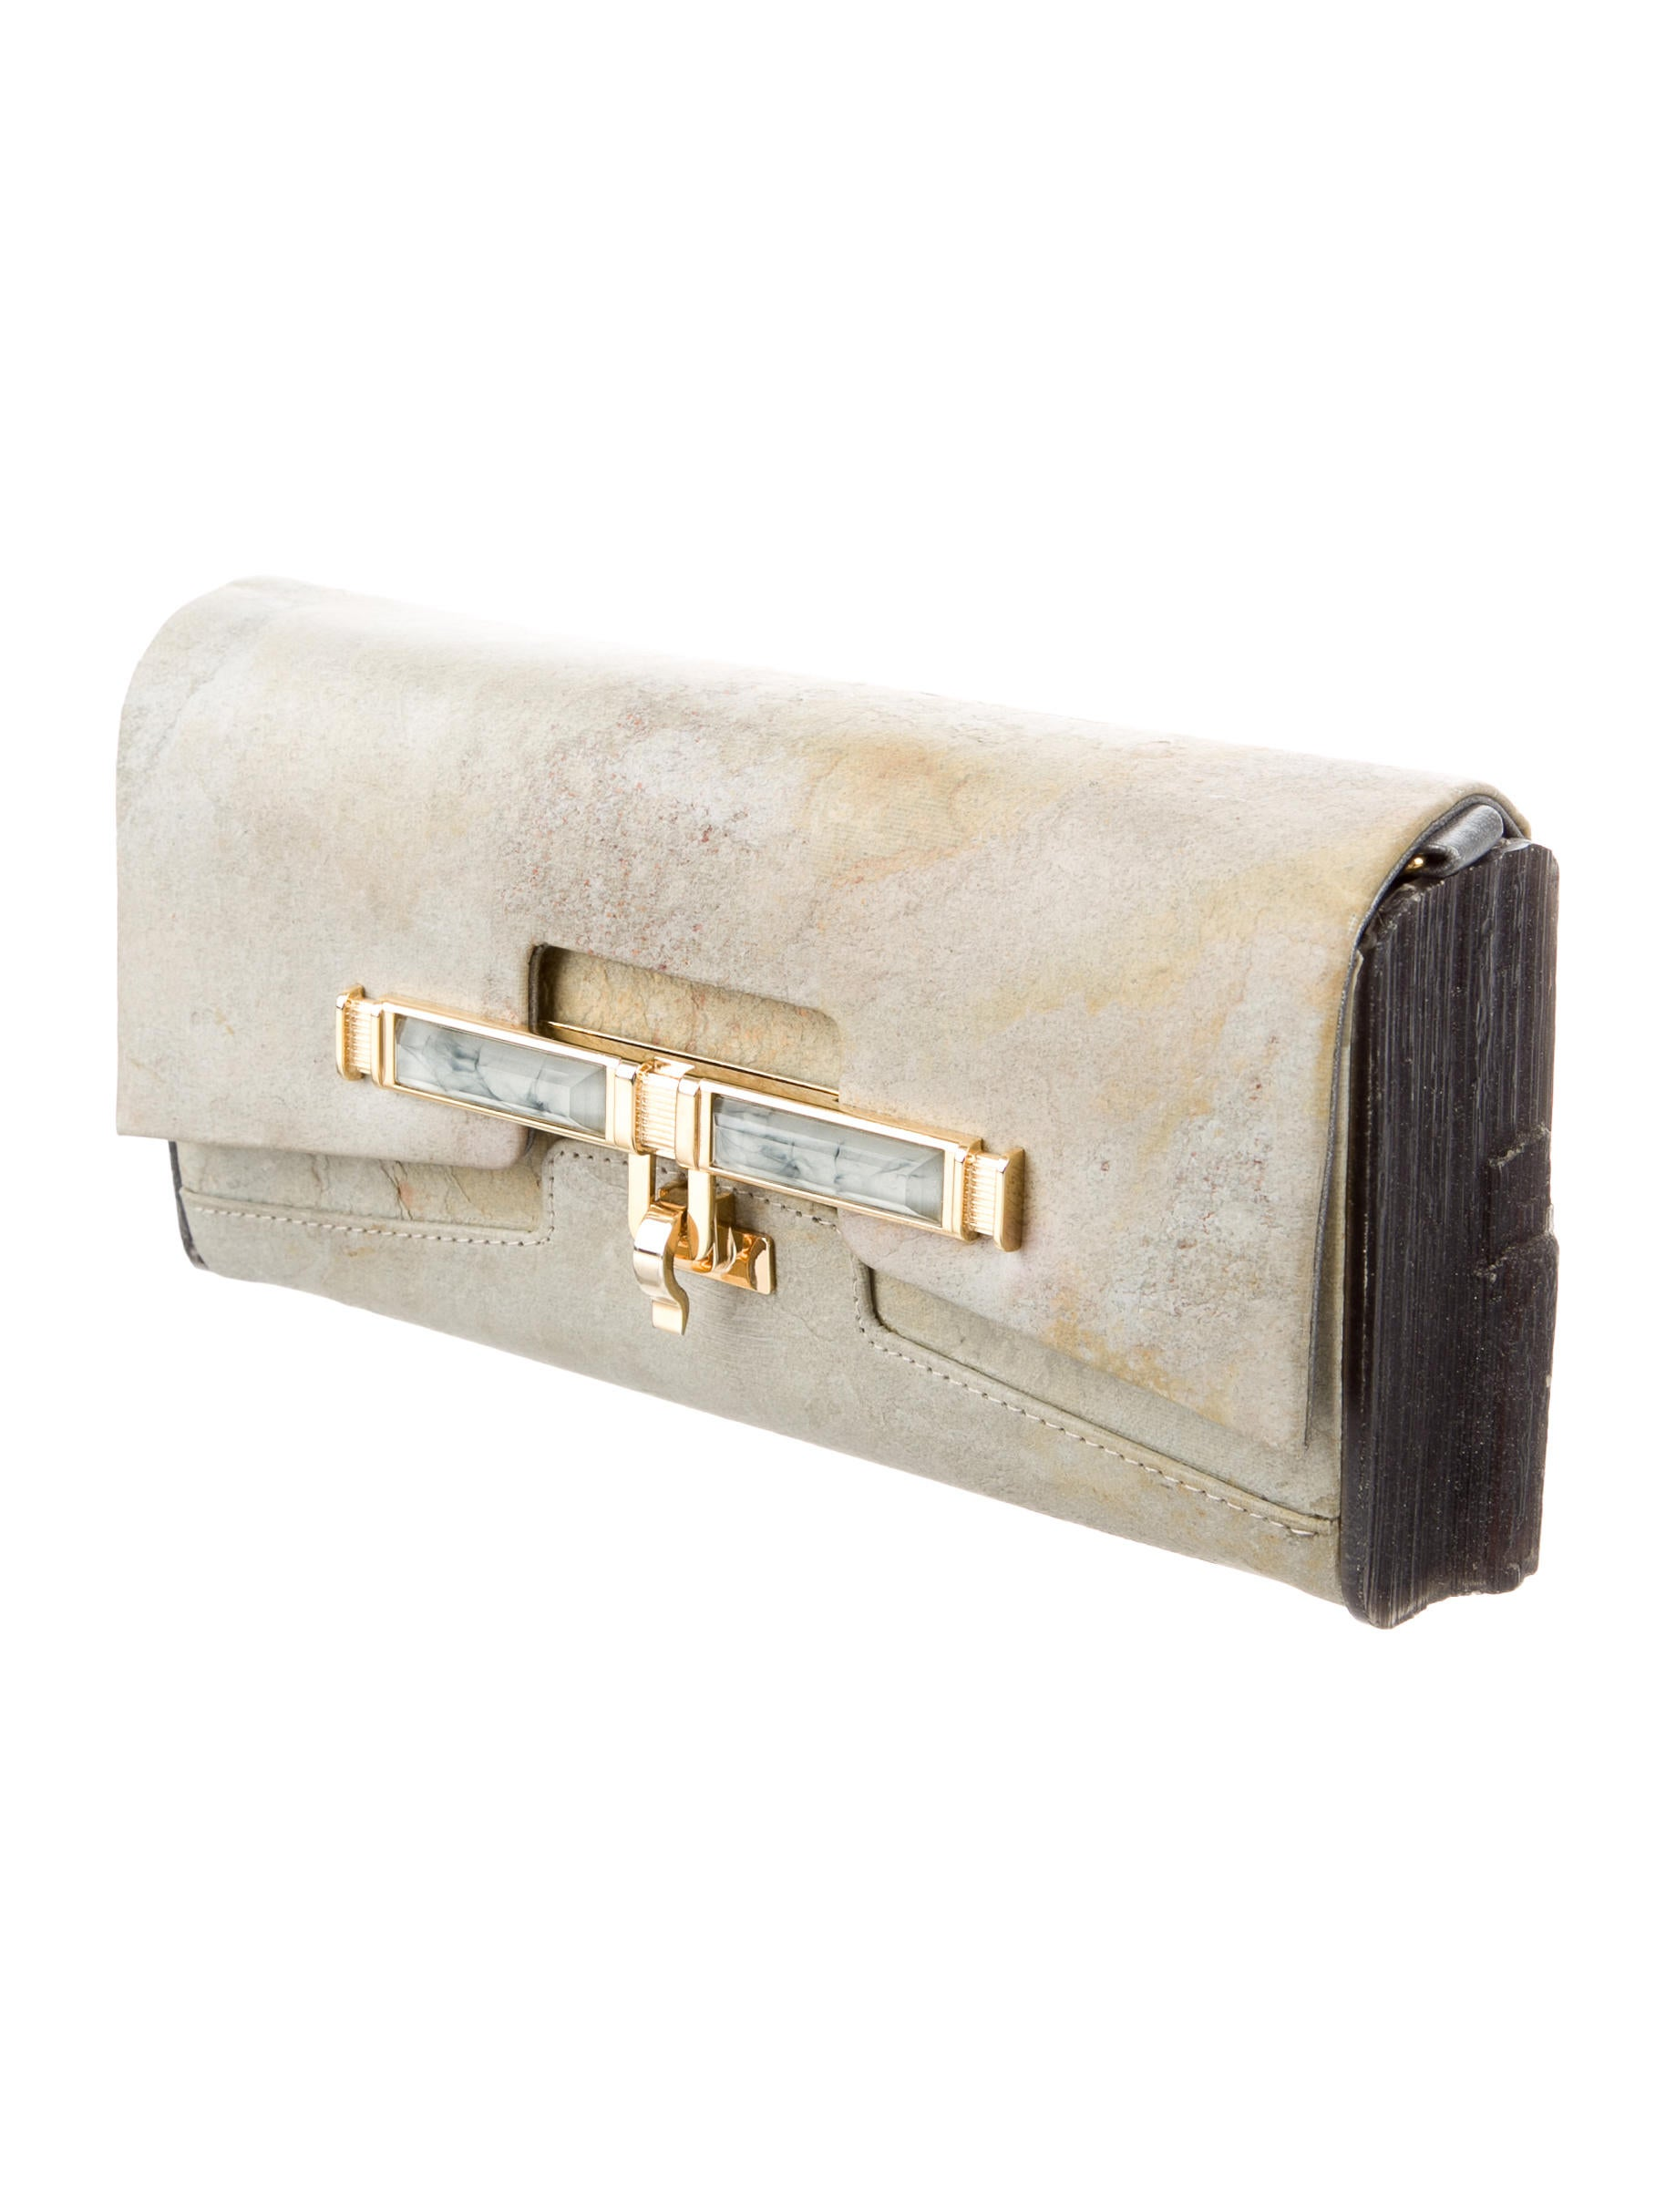 3 Home Decor Trends For Spring Brittany Stager: Kara Ross Lux Marble Clutch - Handbags - KRS20490